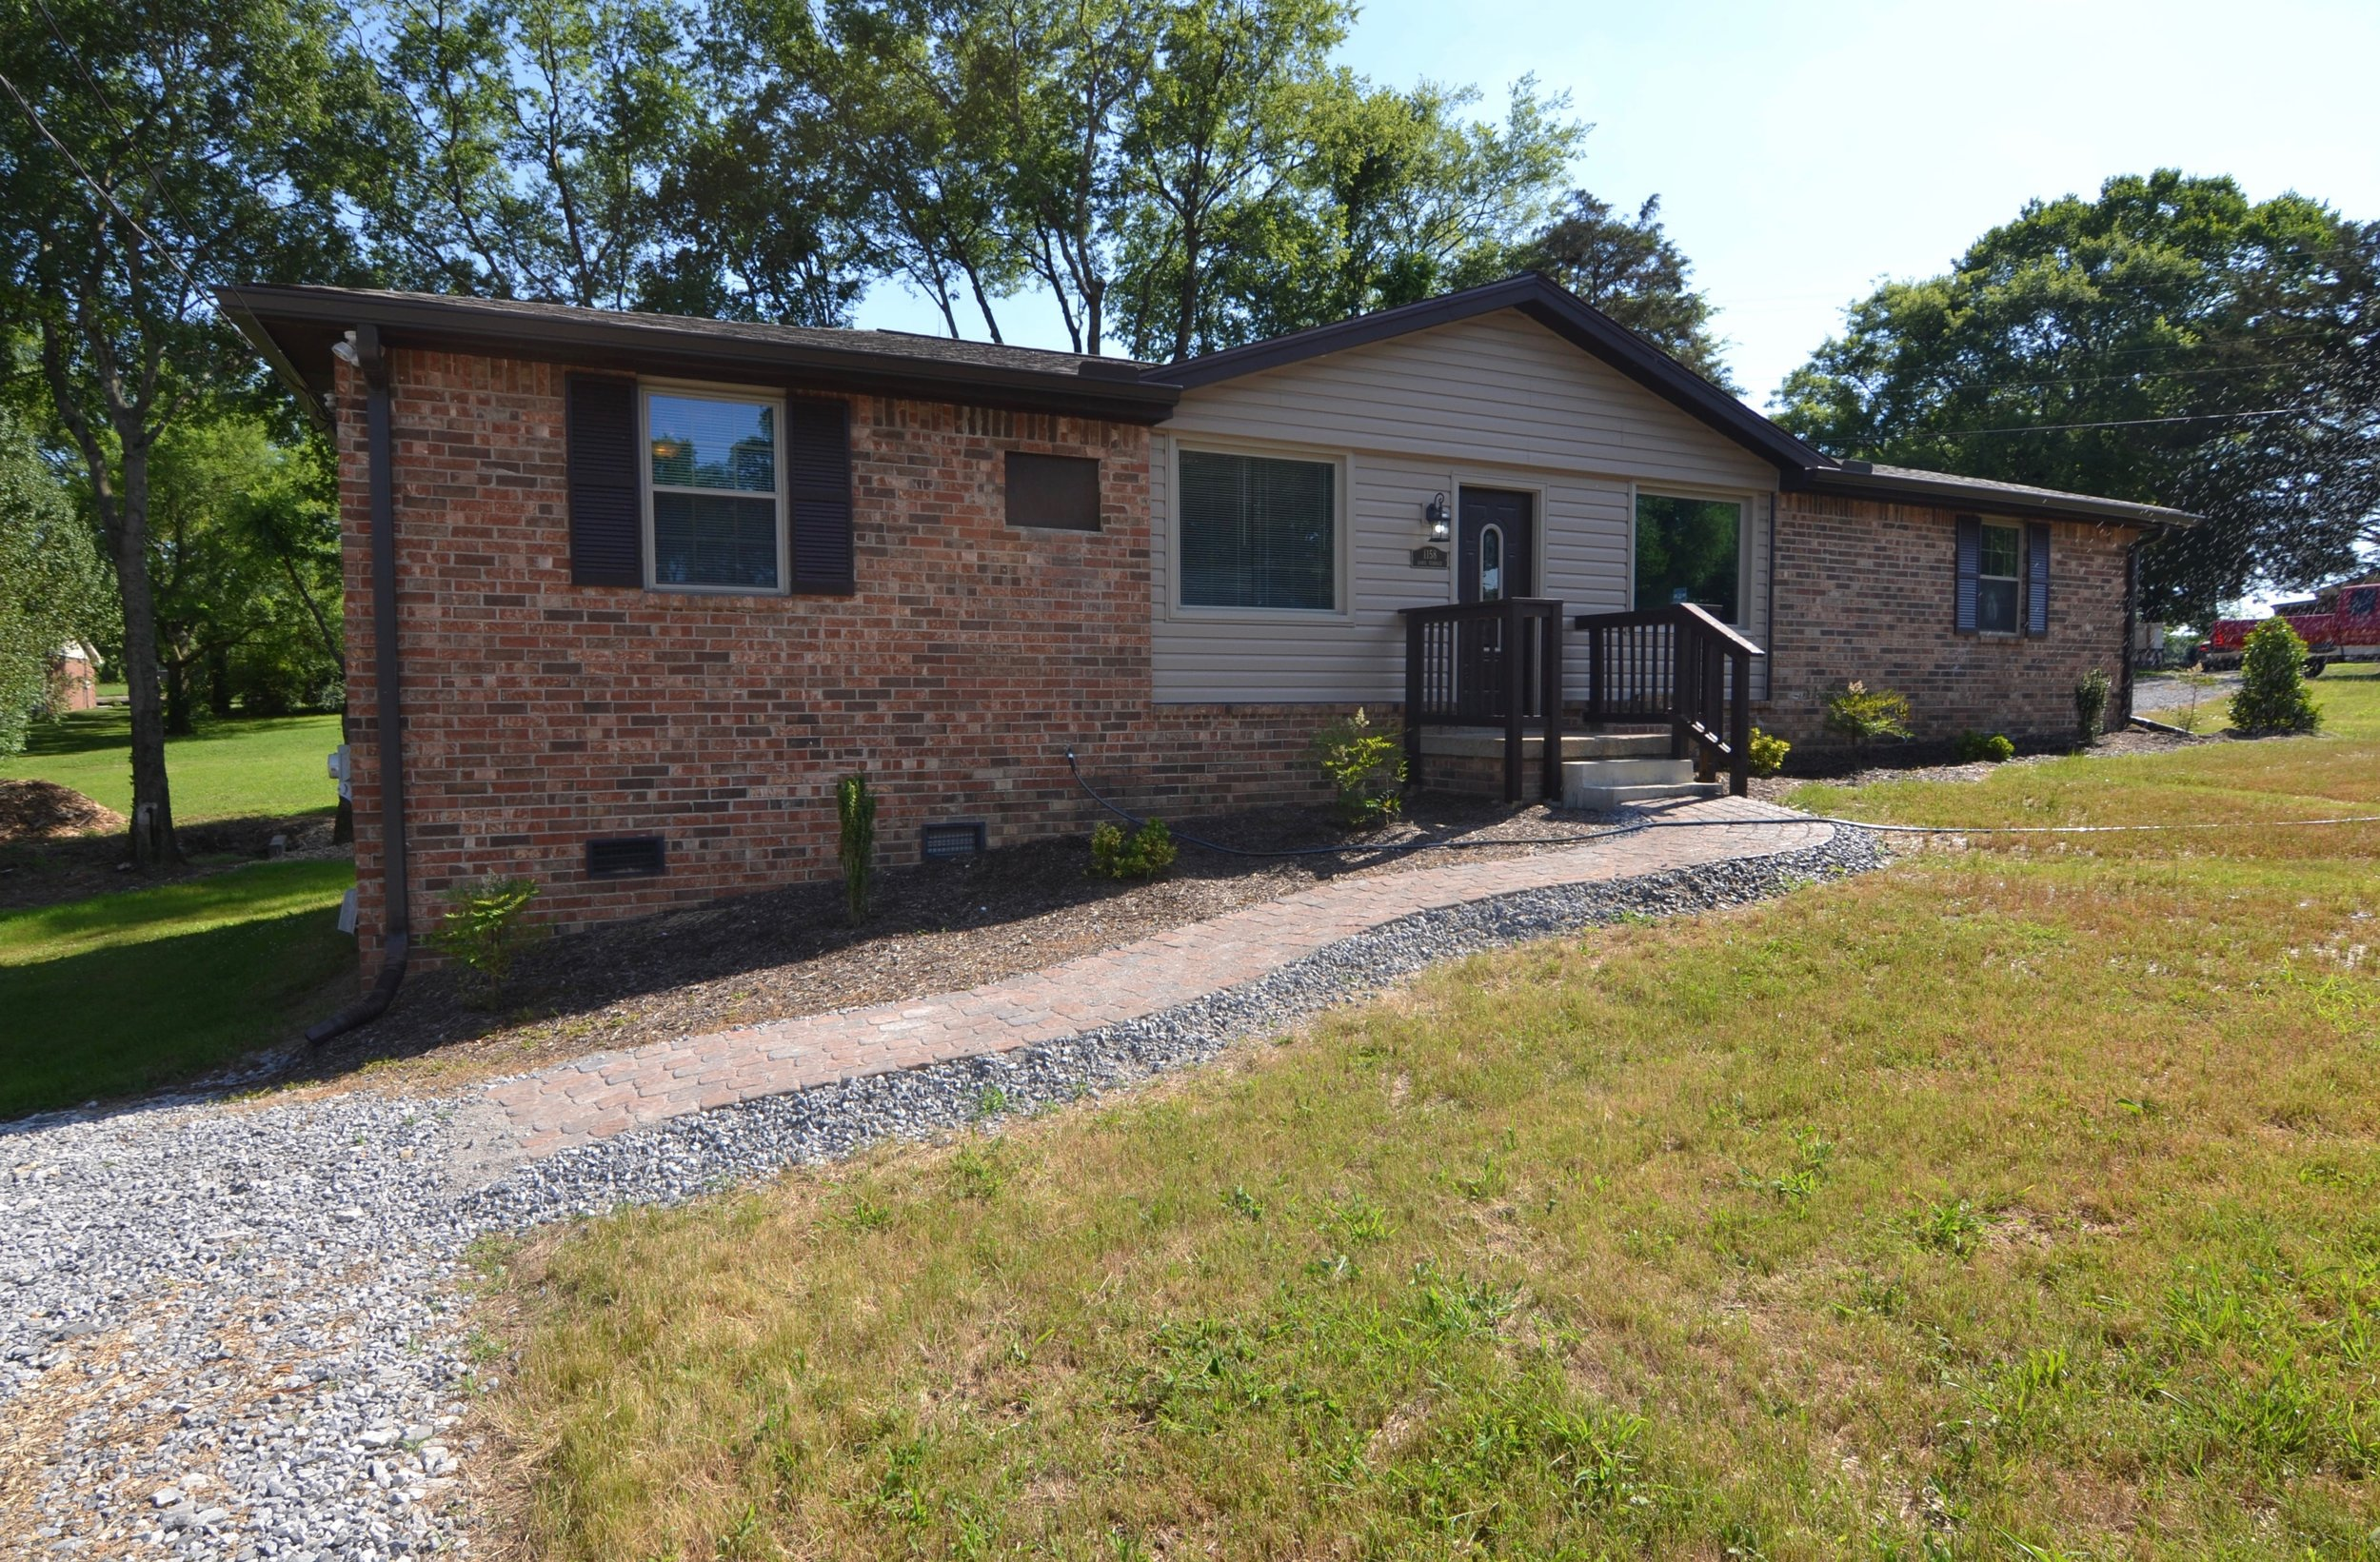 1156 /1158 RENTED  (100% Remodeled) MADISON: 1156 Sioux Terrace: Duplex: 2 Br 1 Ba